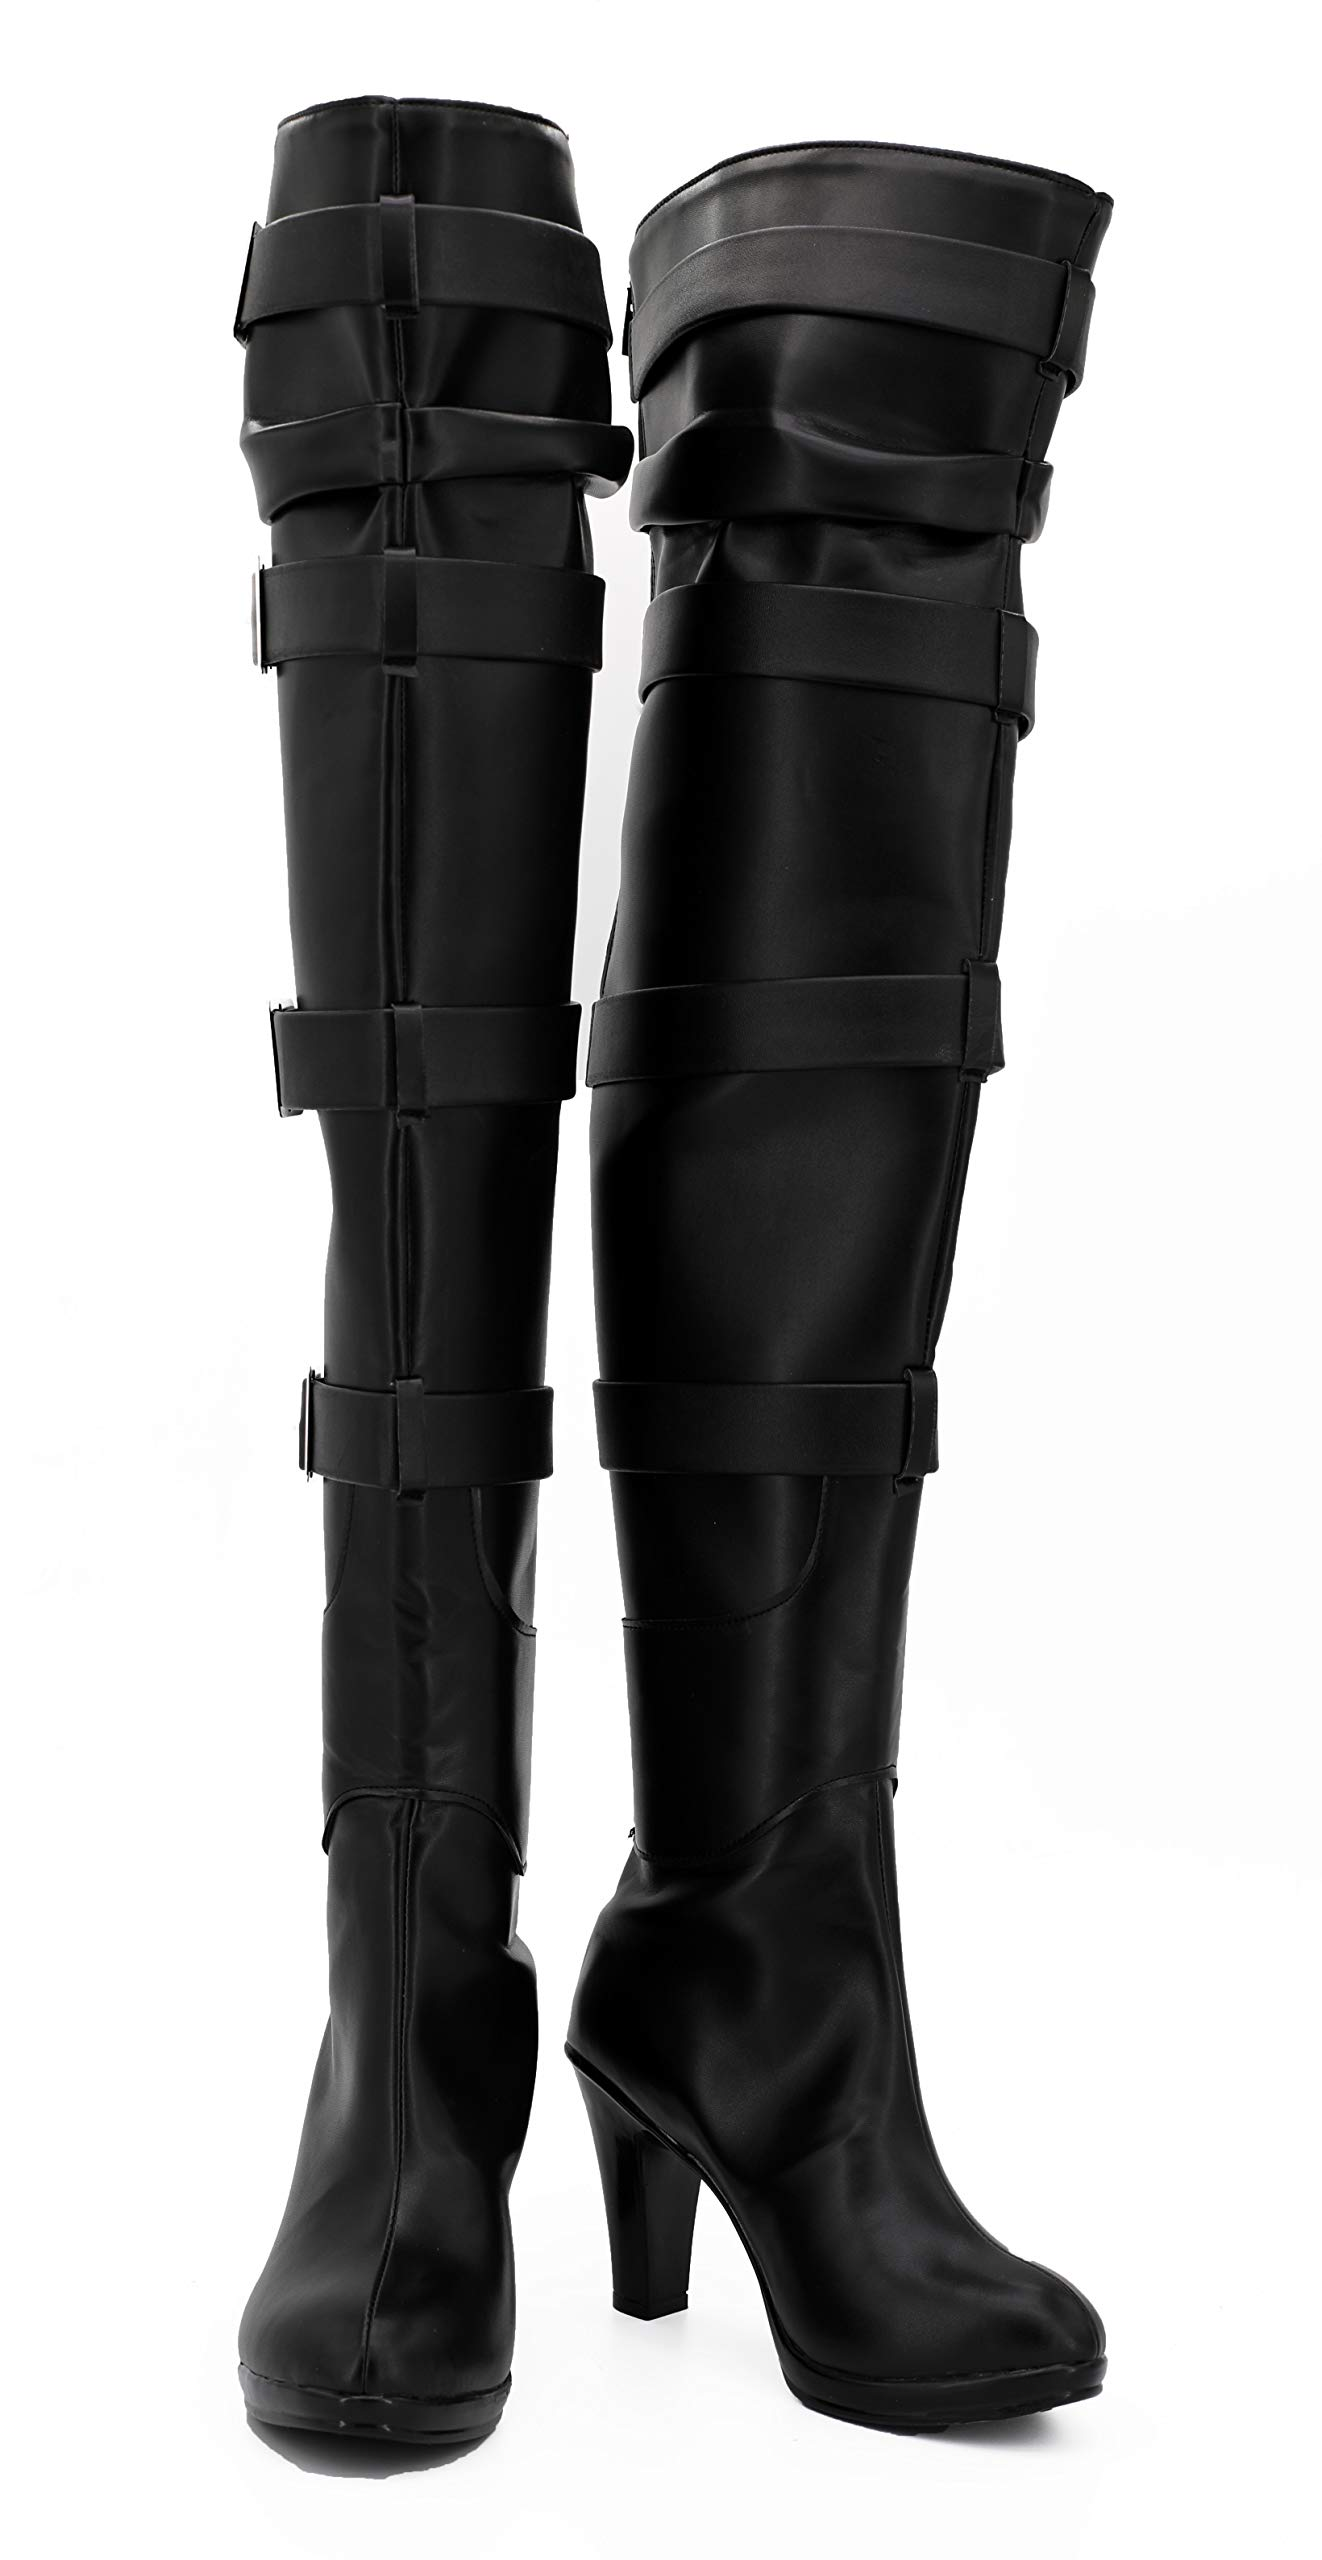 Game Cosplay Boots Knee High Leather